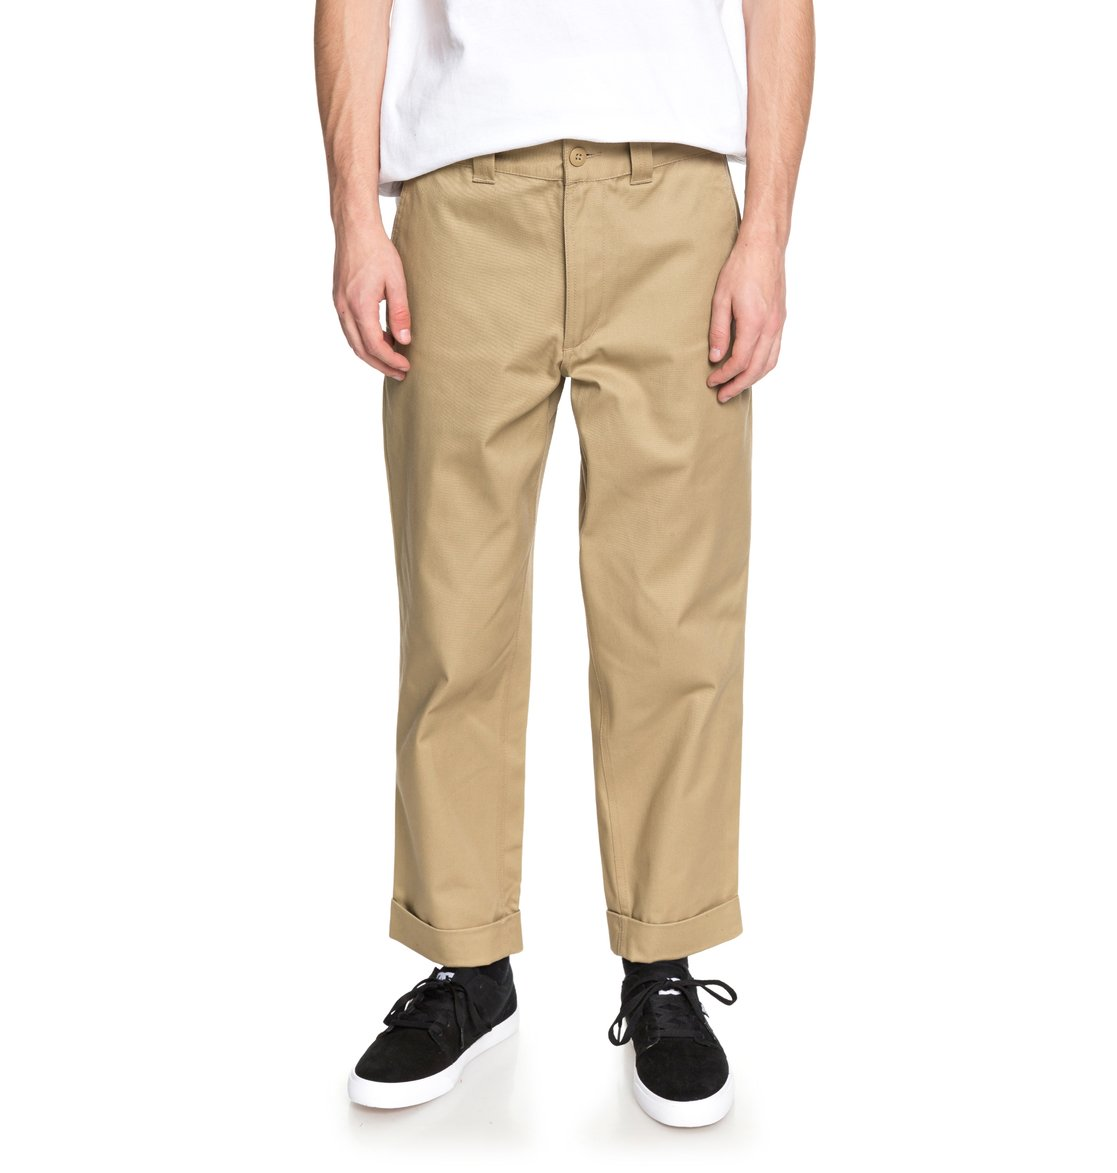 6650c8e06f5d 0 Rolled On Baggy Chinos EDYNP03134 DC Shoes